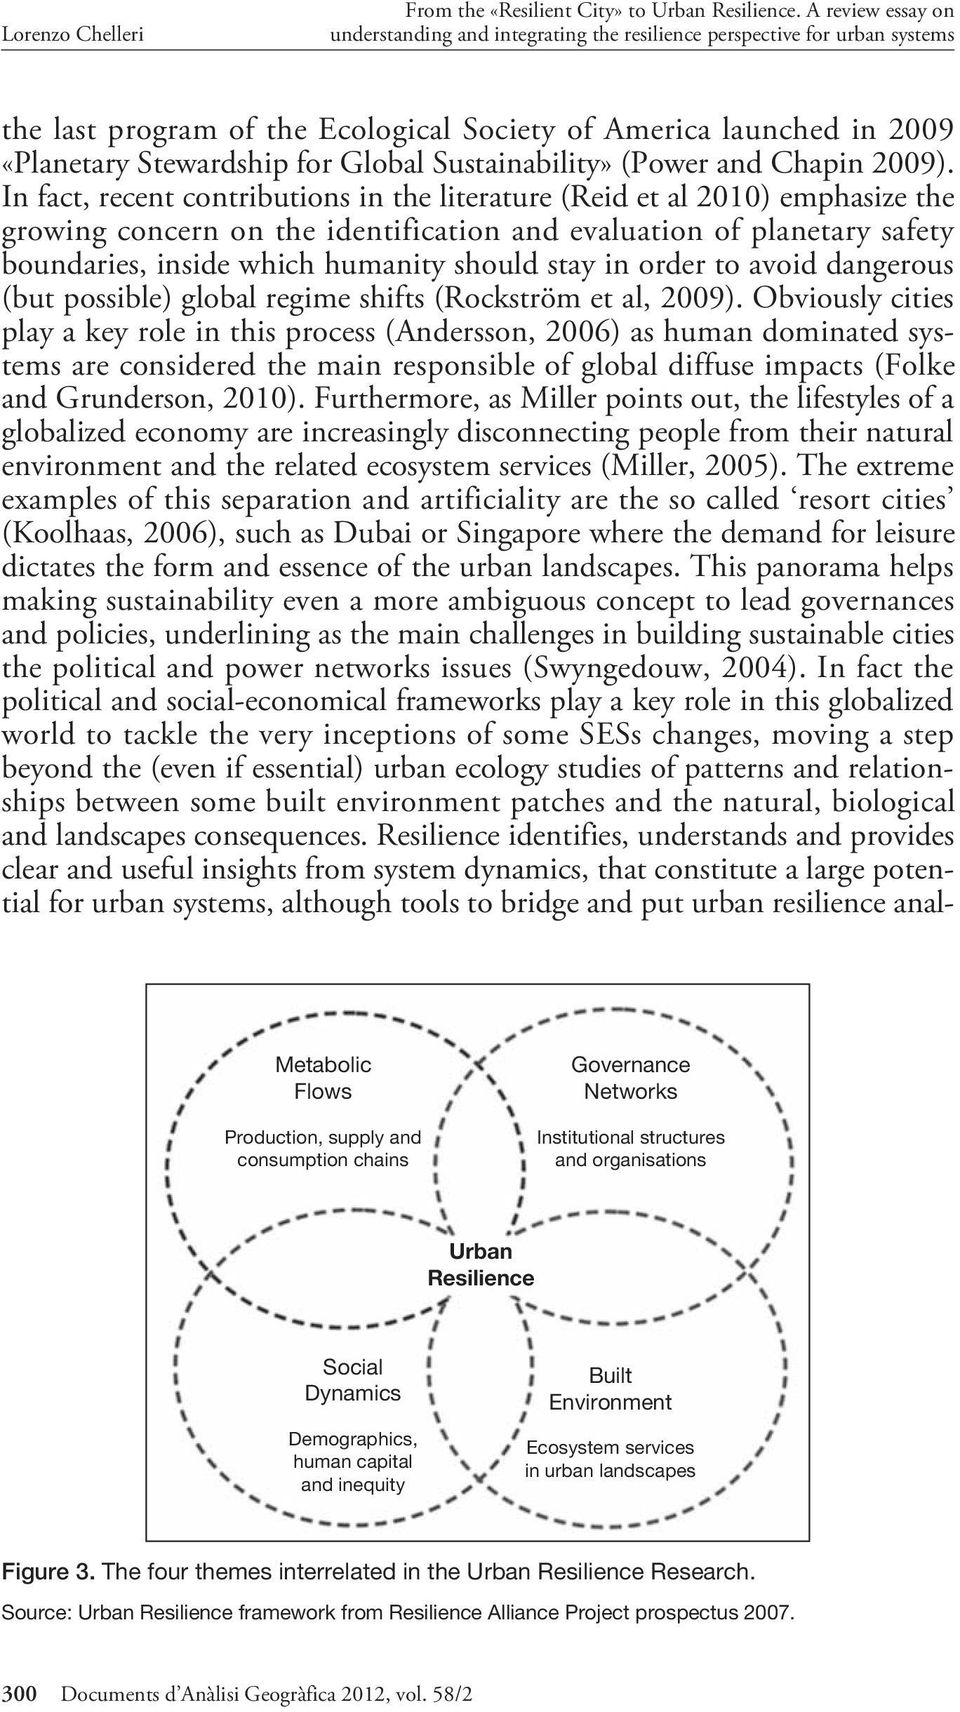 In fact, recent contributions in the literature (Reid et al 2010) emphasize the growing concern on the identification and evaluation of planetary safety boundaries, inside which humanity should stay